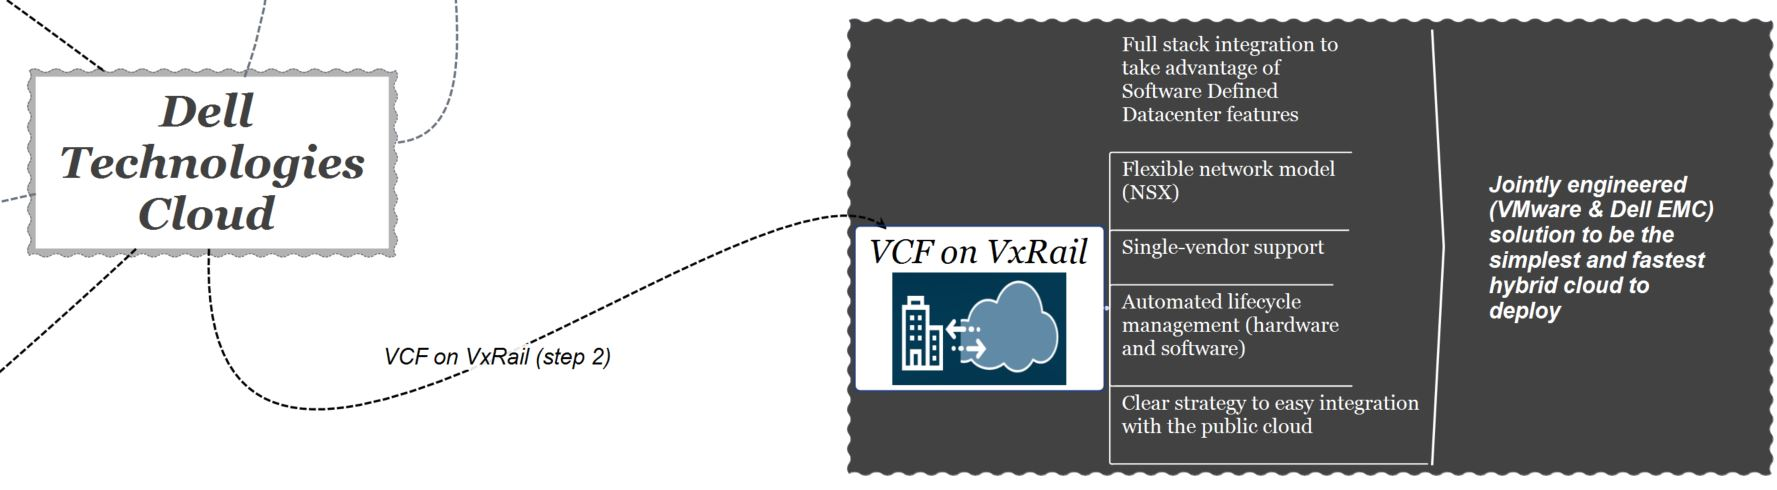 dell technologies cloud - vcf on VxRail